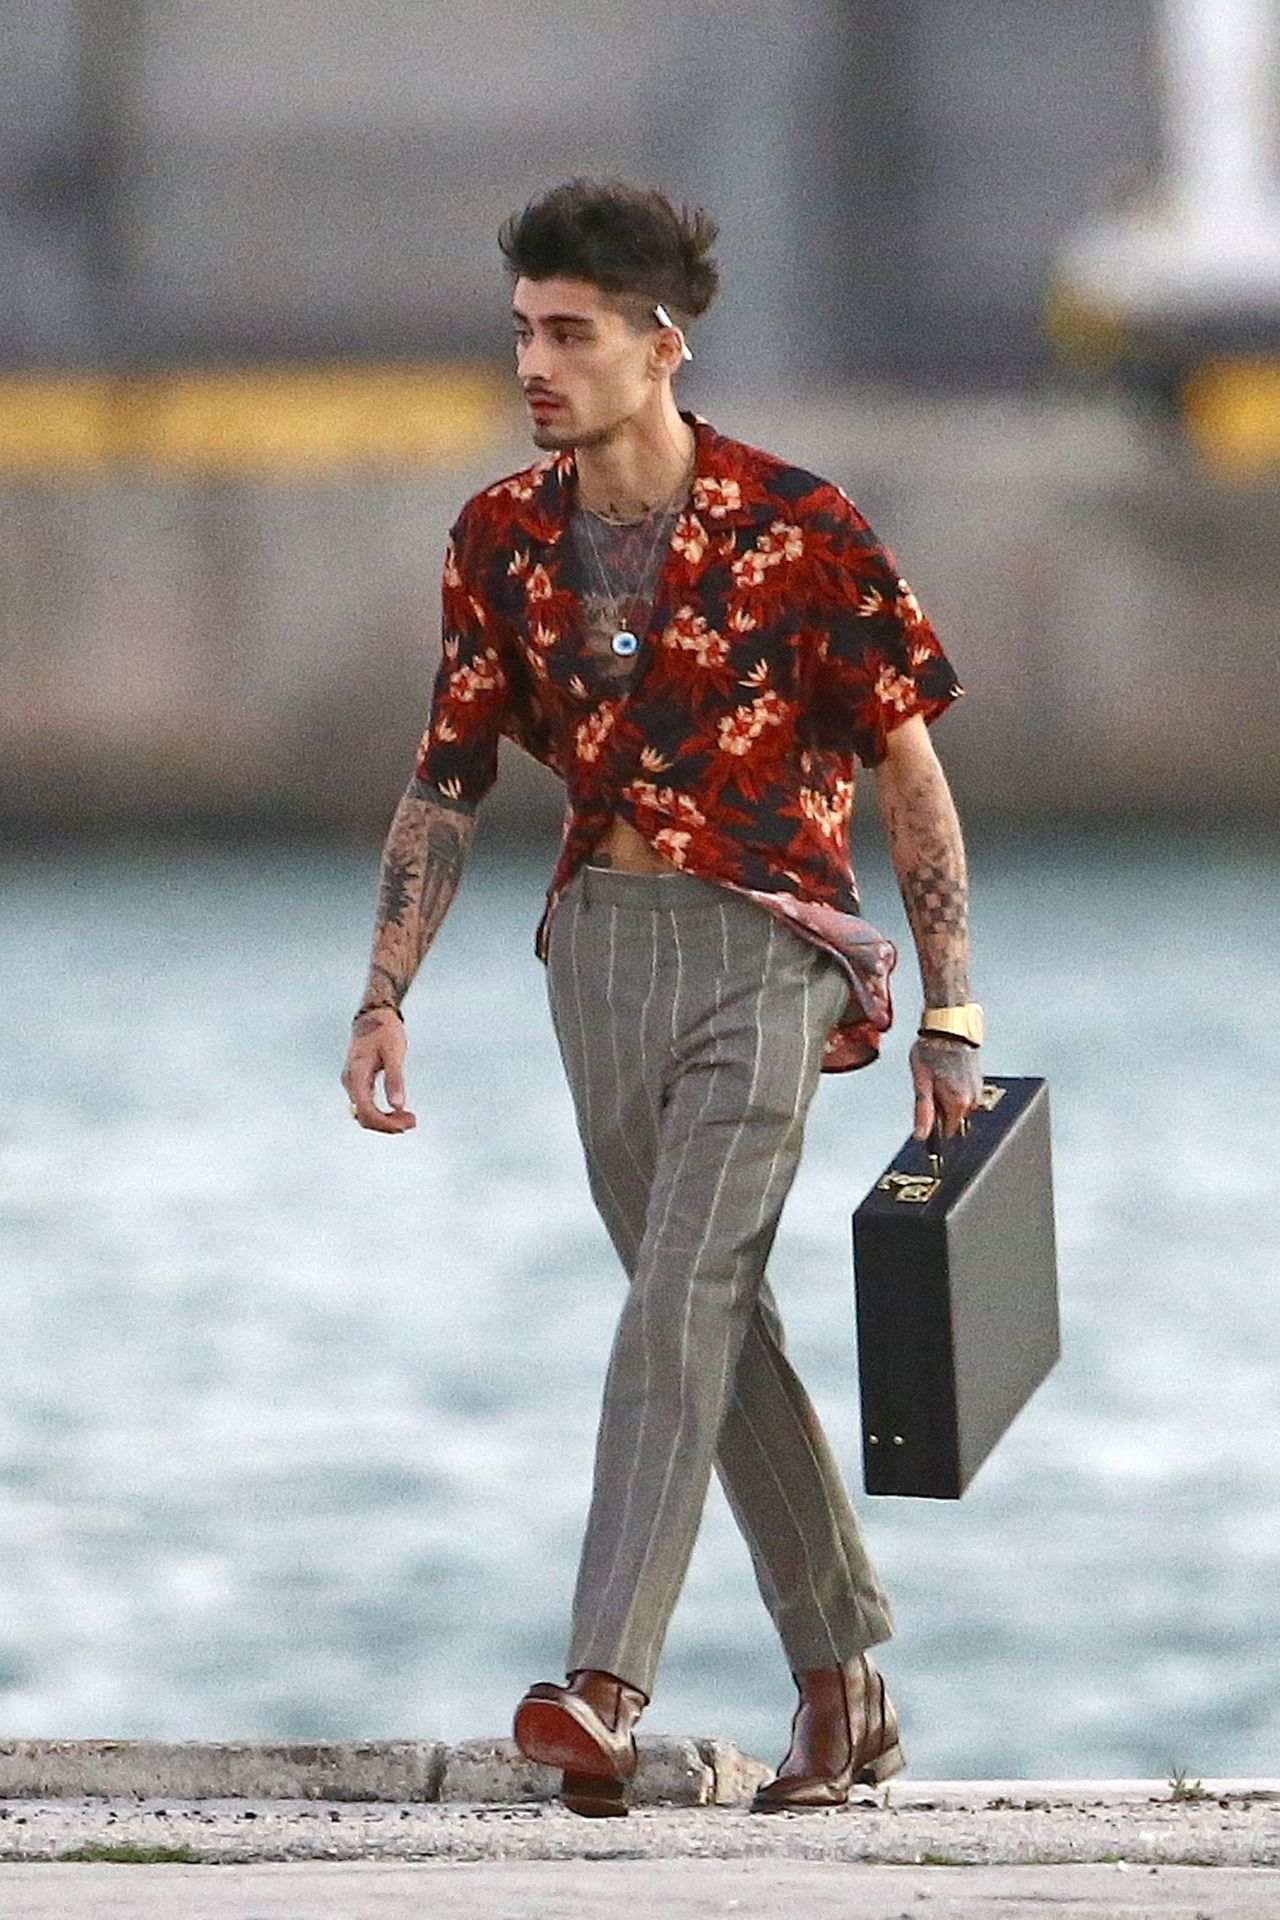 Zayn shooting a music video in Miami on March 3, 2018.